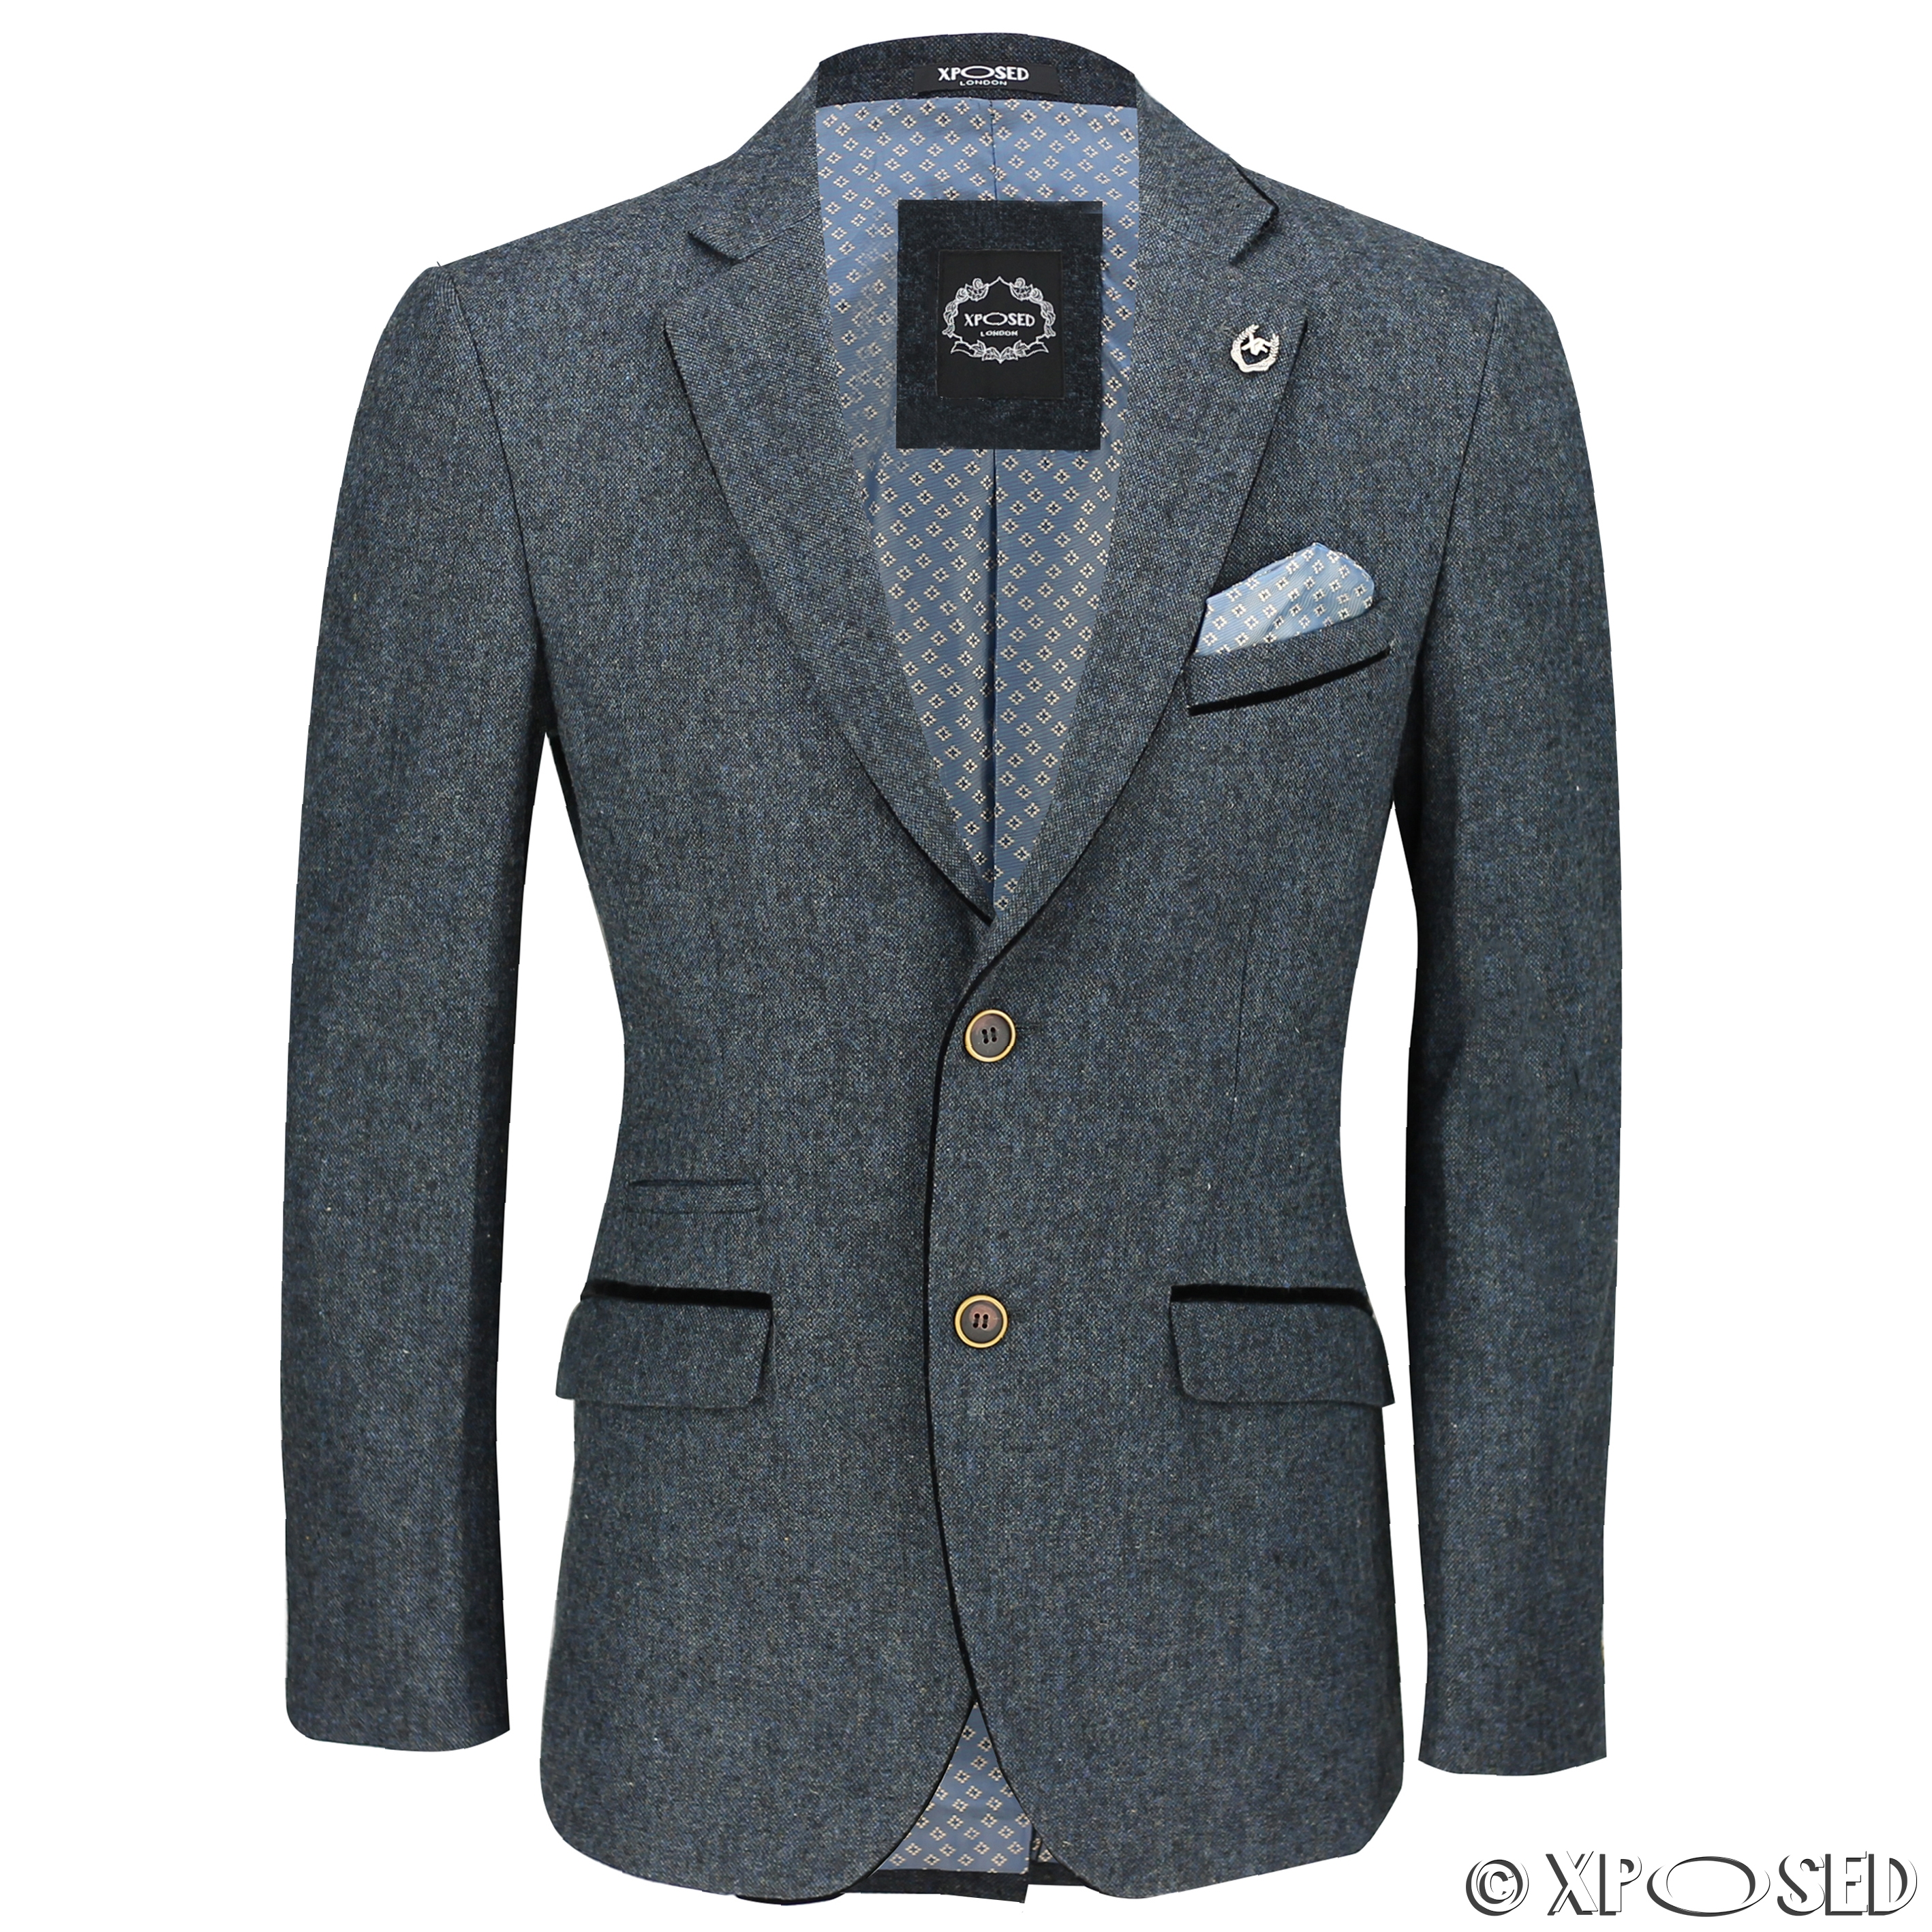 How to wear a blazer and waistcoat as separates. Styling a three-piece suit blazer and waistcoat together is perfect for stylish office and business attire.